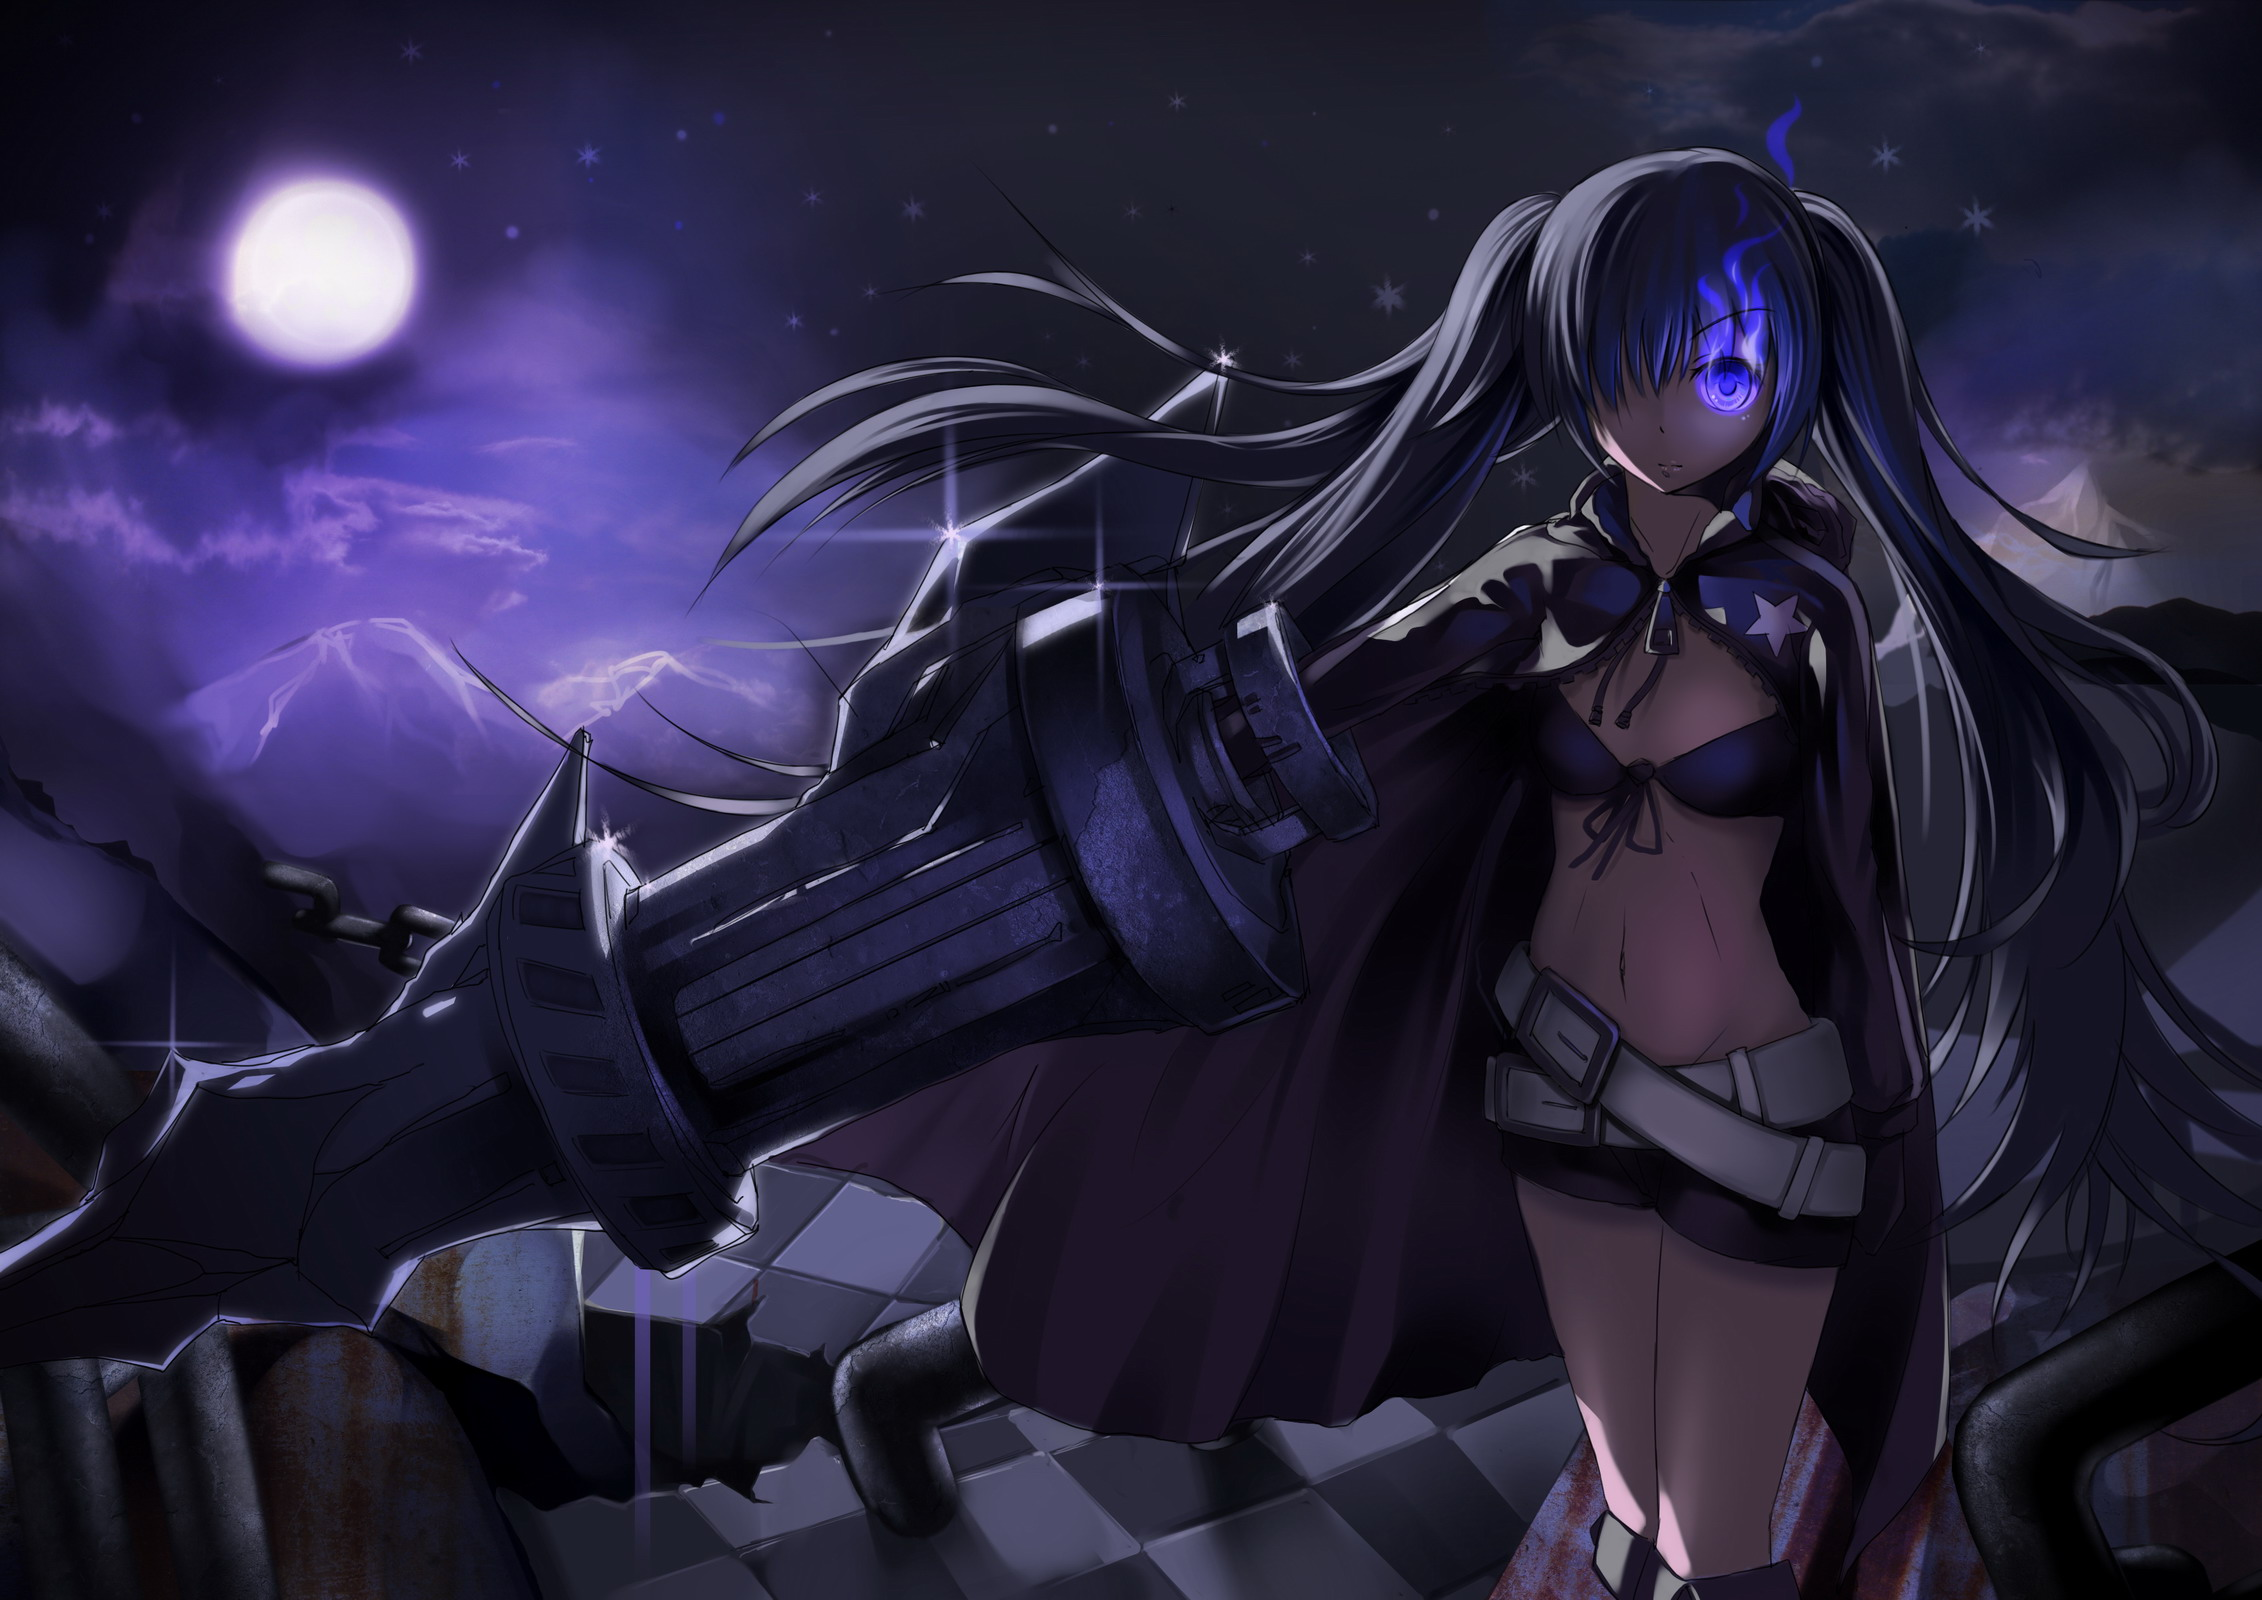 Hd Wallpaper Background Image Id X Anime Black Rock Shooter